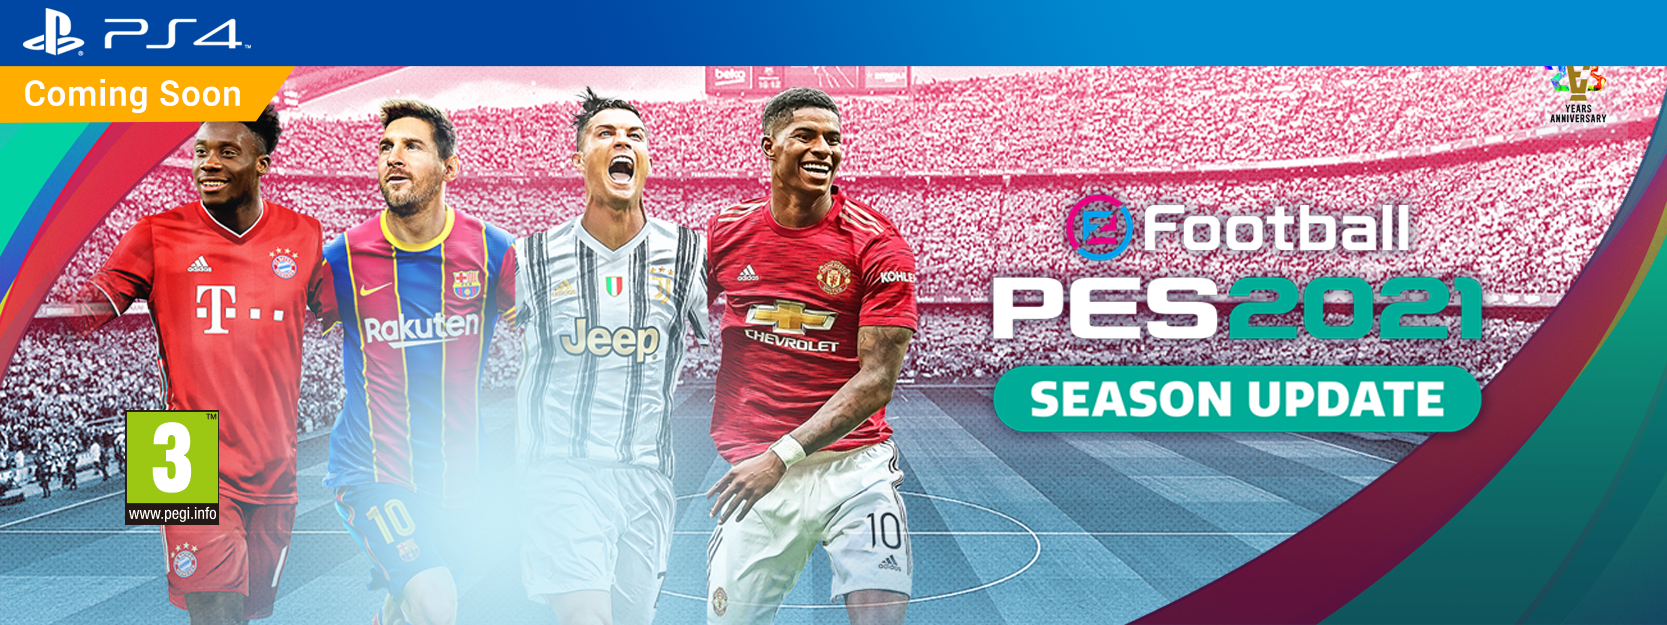 PES 2021 IN Qatar And Doha